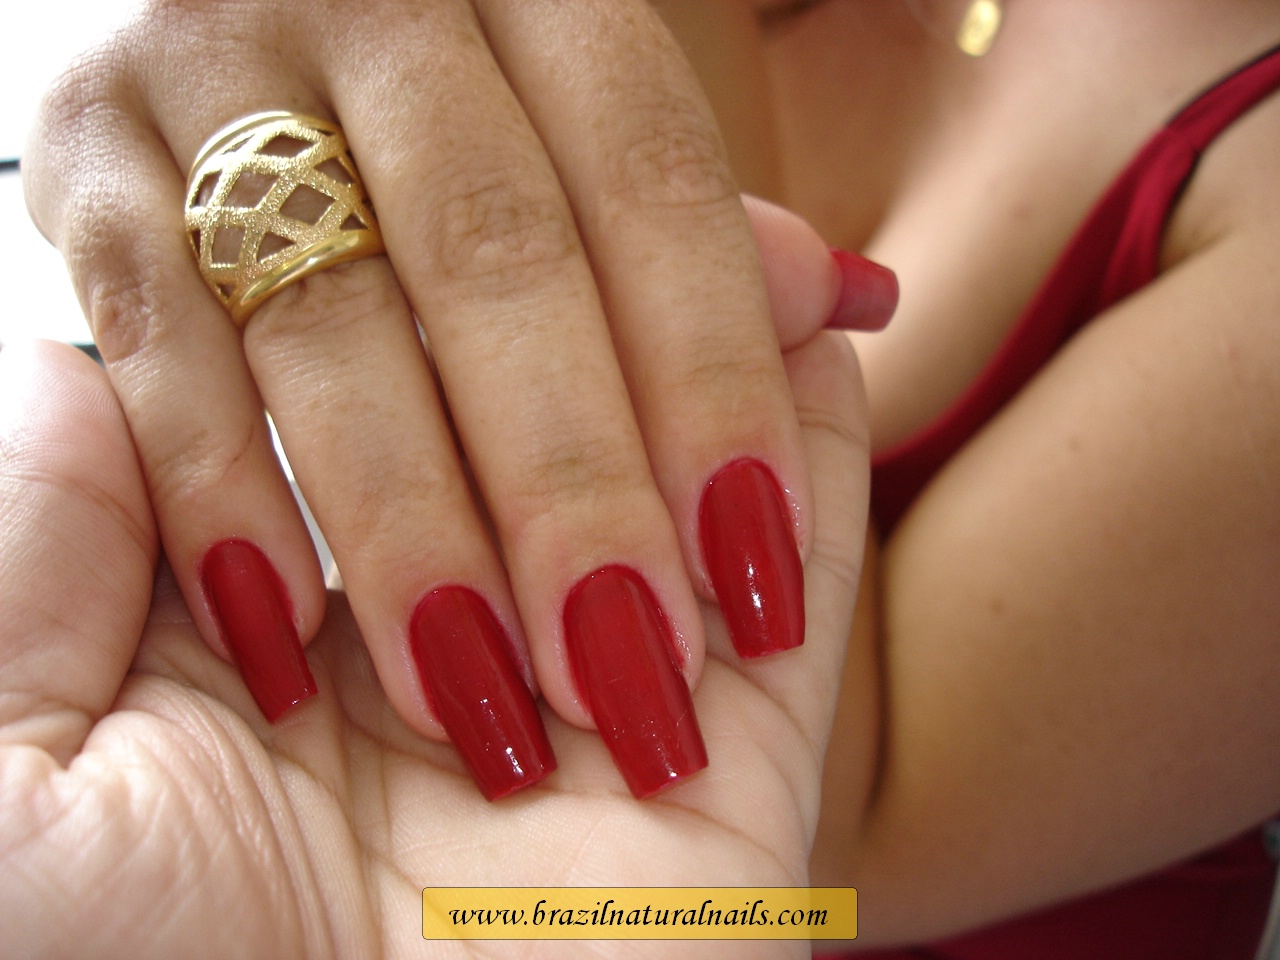 Anyone may join Brazil Natural Nails. Our membership activation is